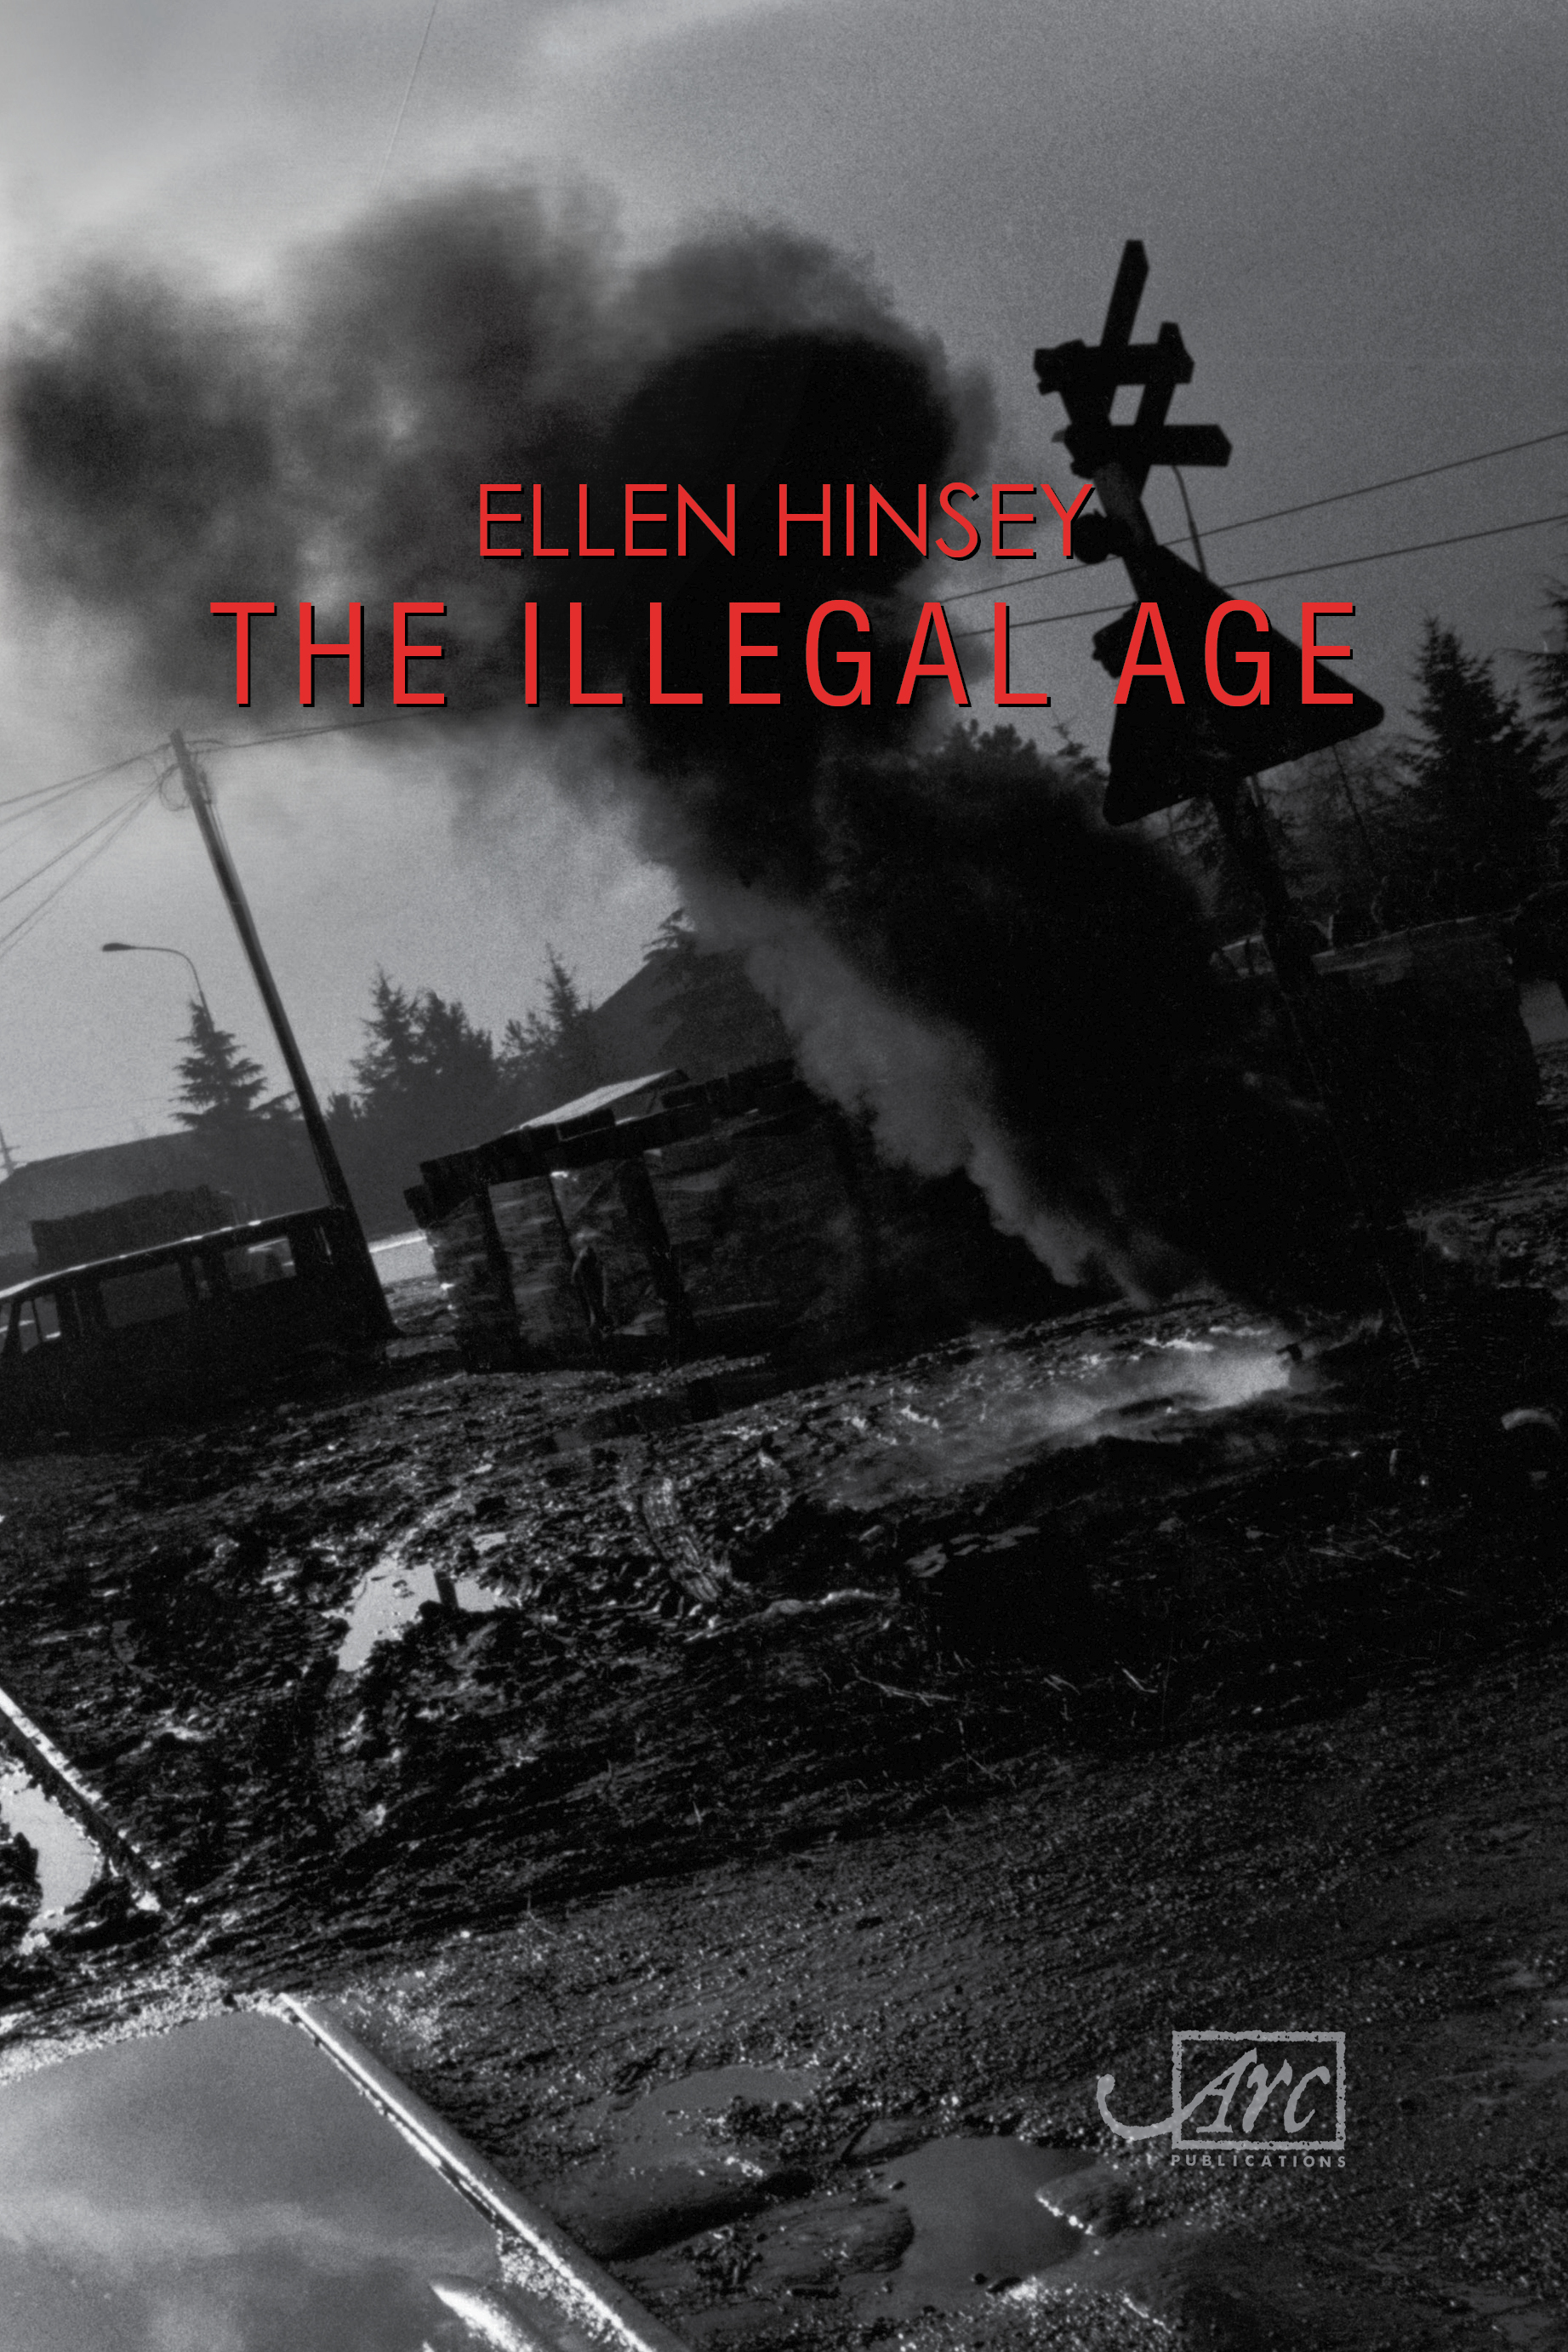 [The Illegal Age]